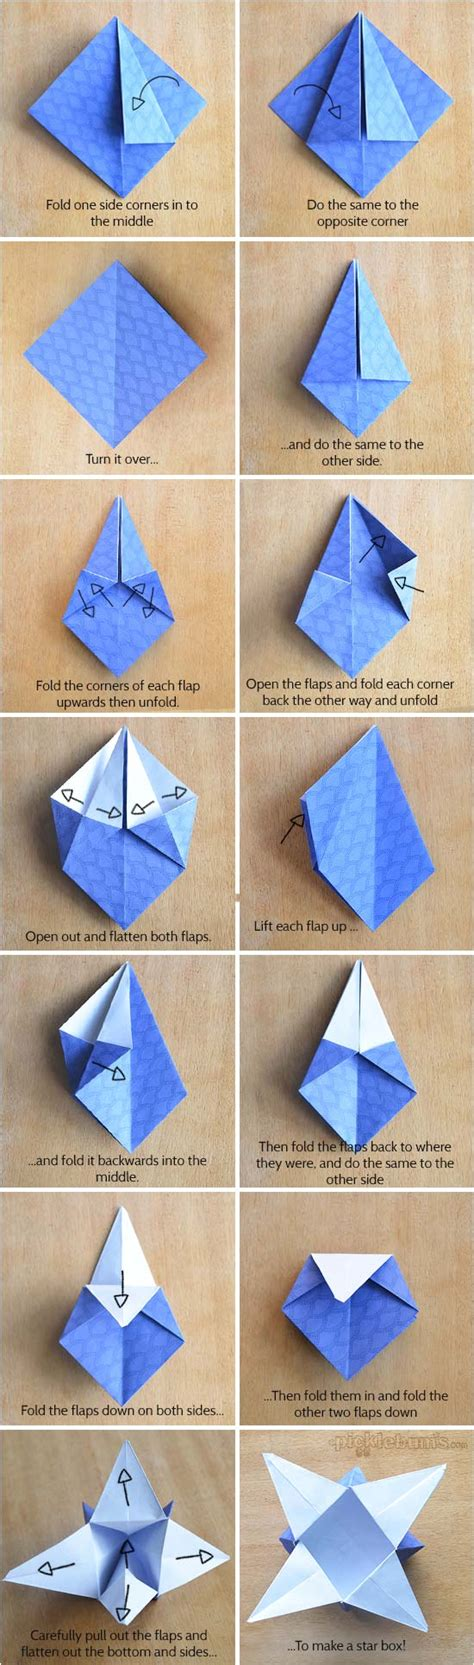 Where Can You Buy Origami Paper - origami boxes with printable origami paper origami